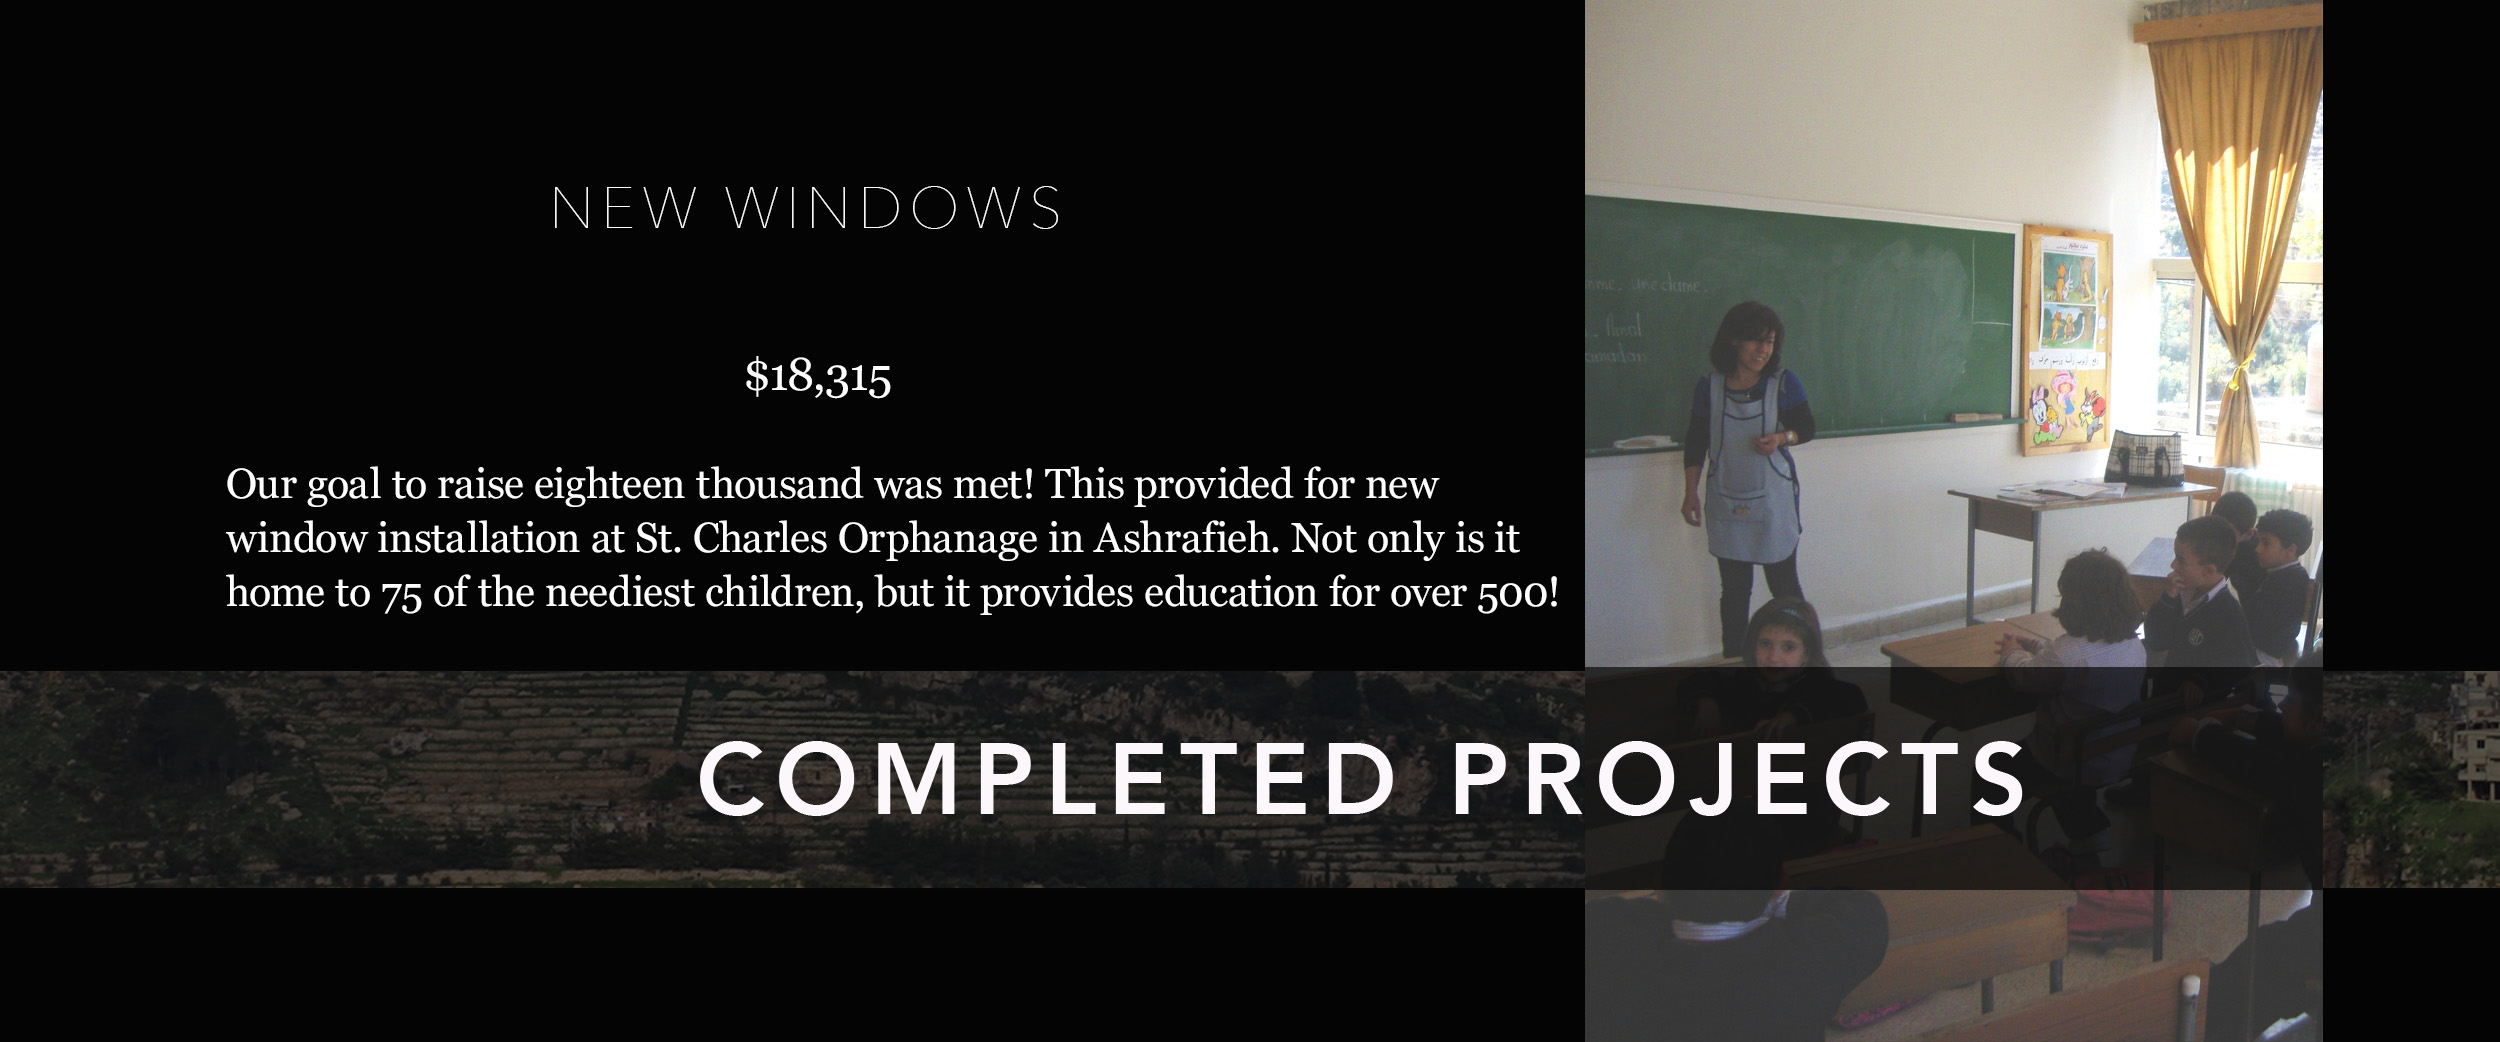 EOL completed projects slides - new windows edit.jpg